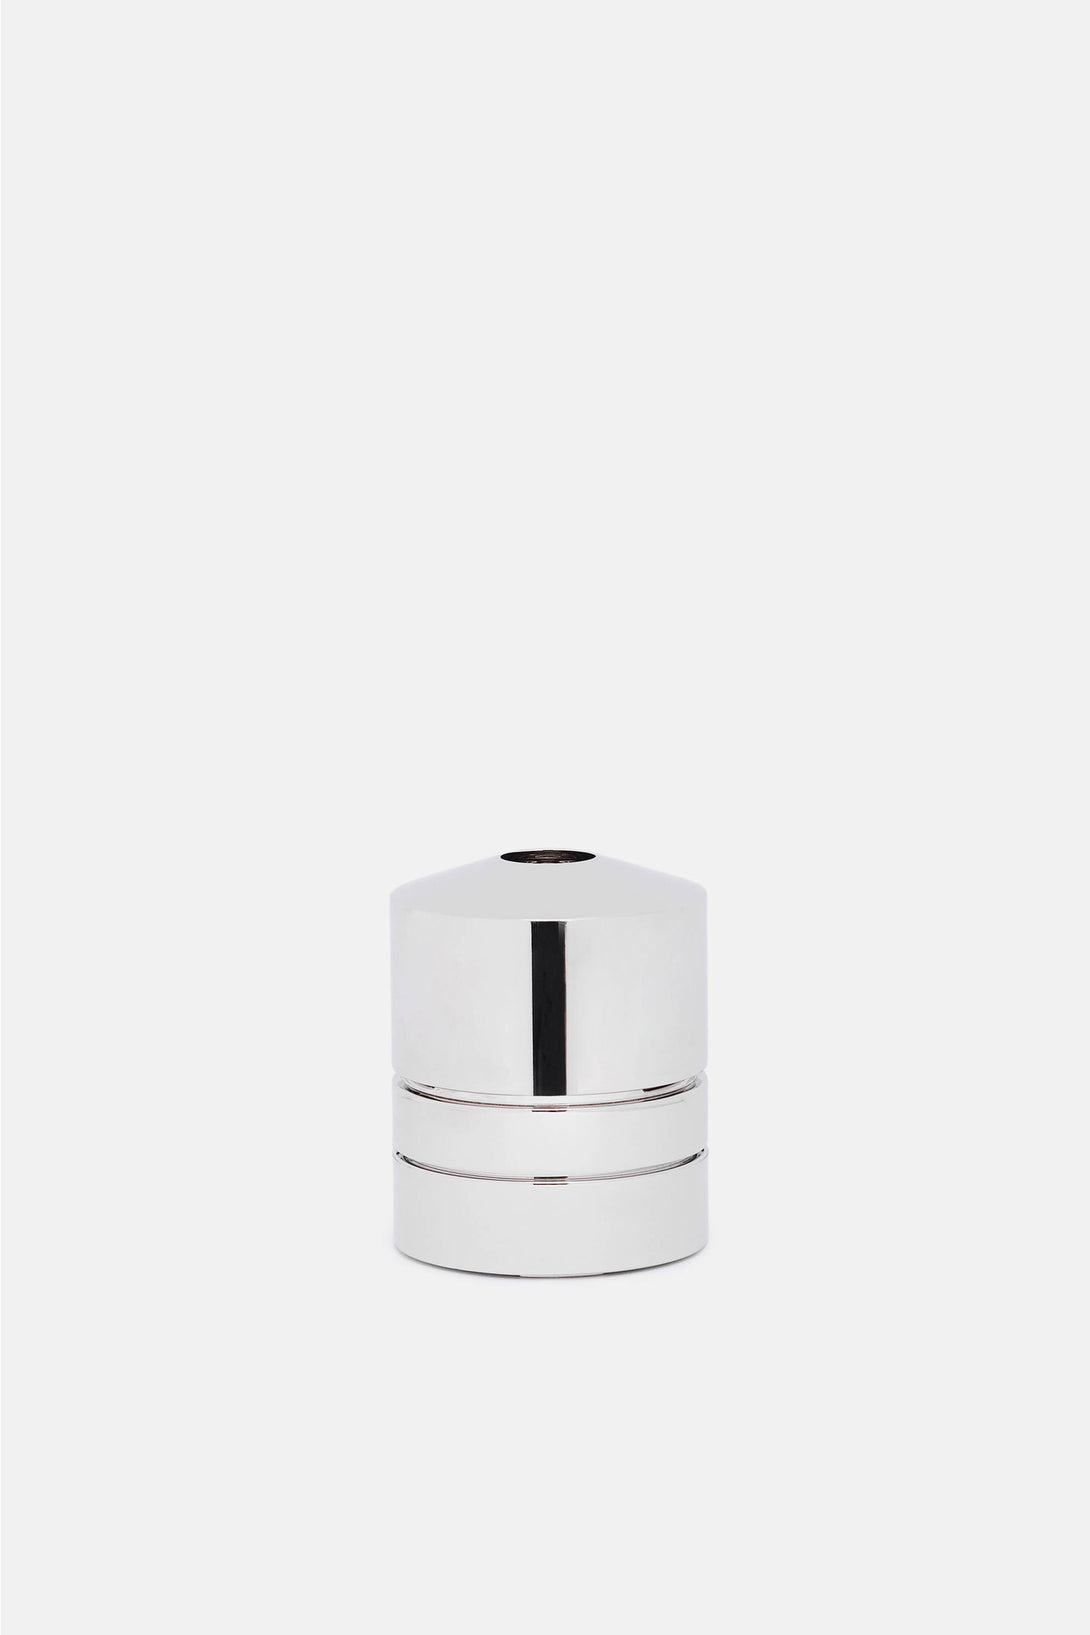 Satin Nickel Tall Cylinder Burner